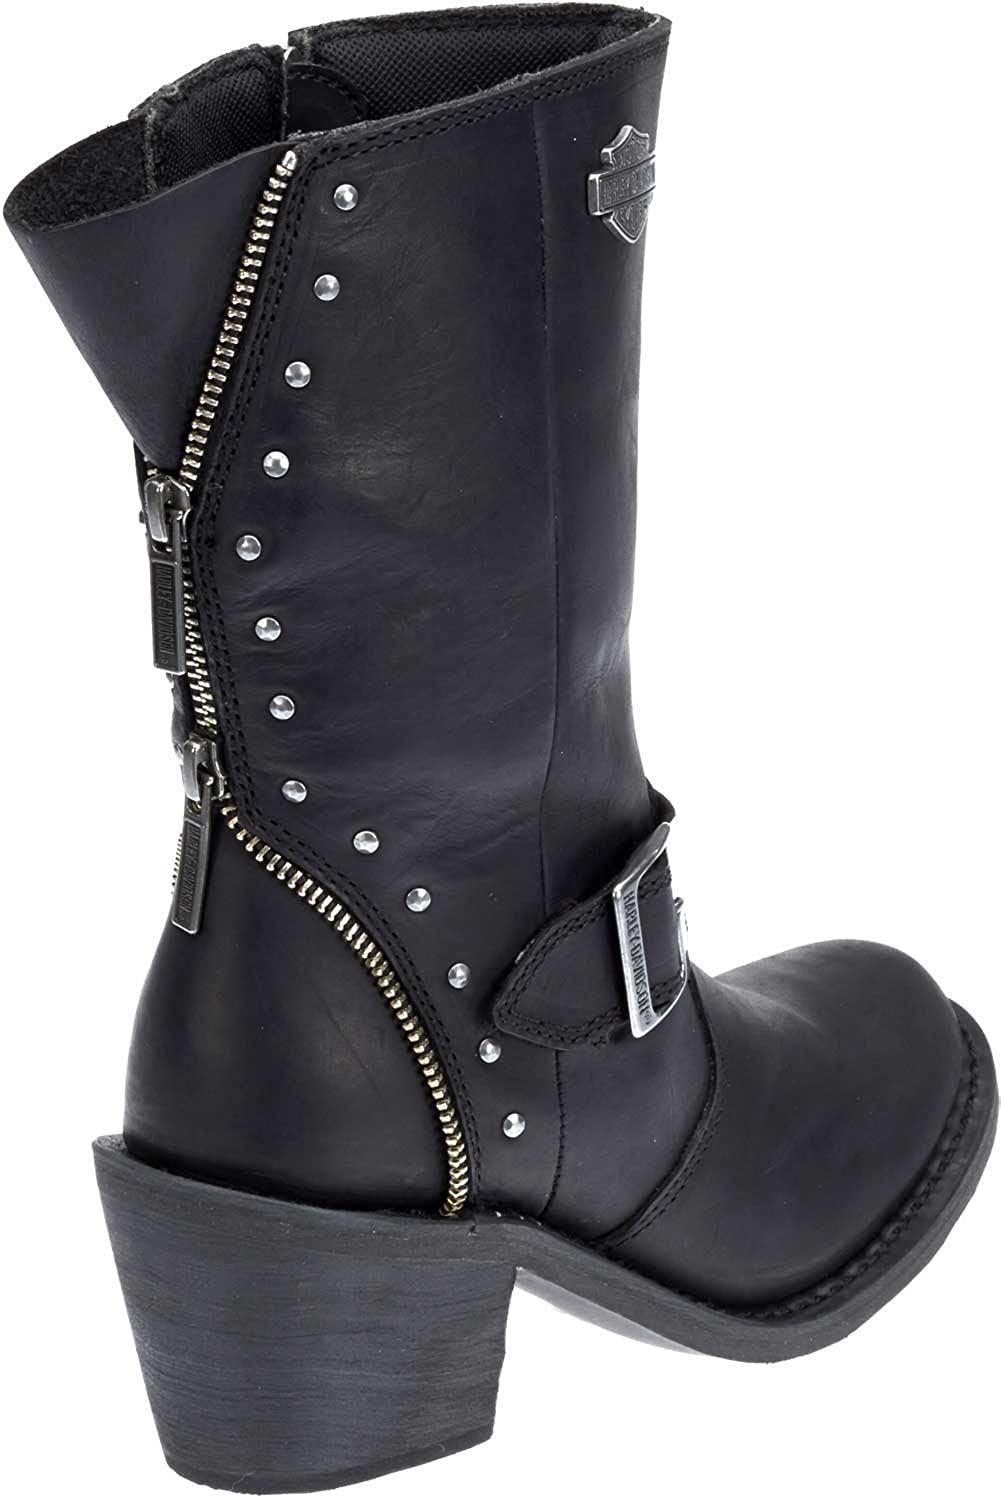 27565e36ac58 Amazon.com  Harley-Davidson Women s Rosanne 8-Inch Waterproof Black  Motorcycle Boots D87127  Harley-Davidson  Clothing